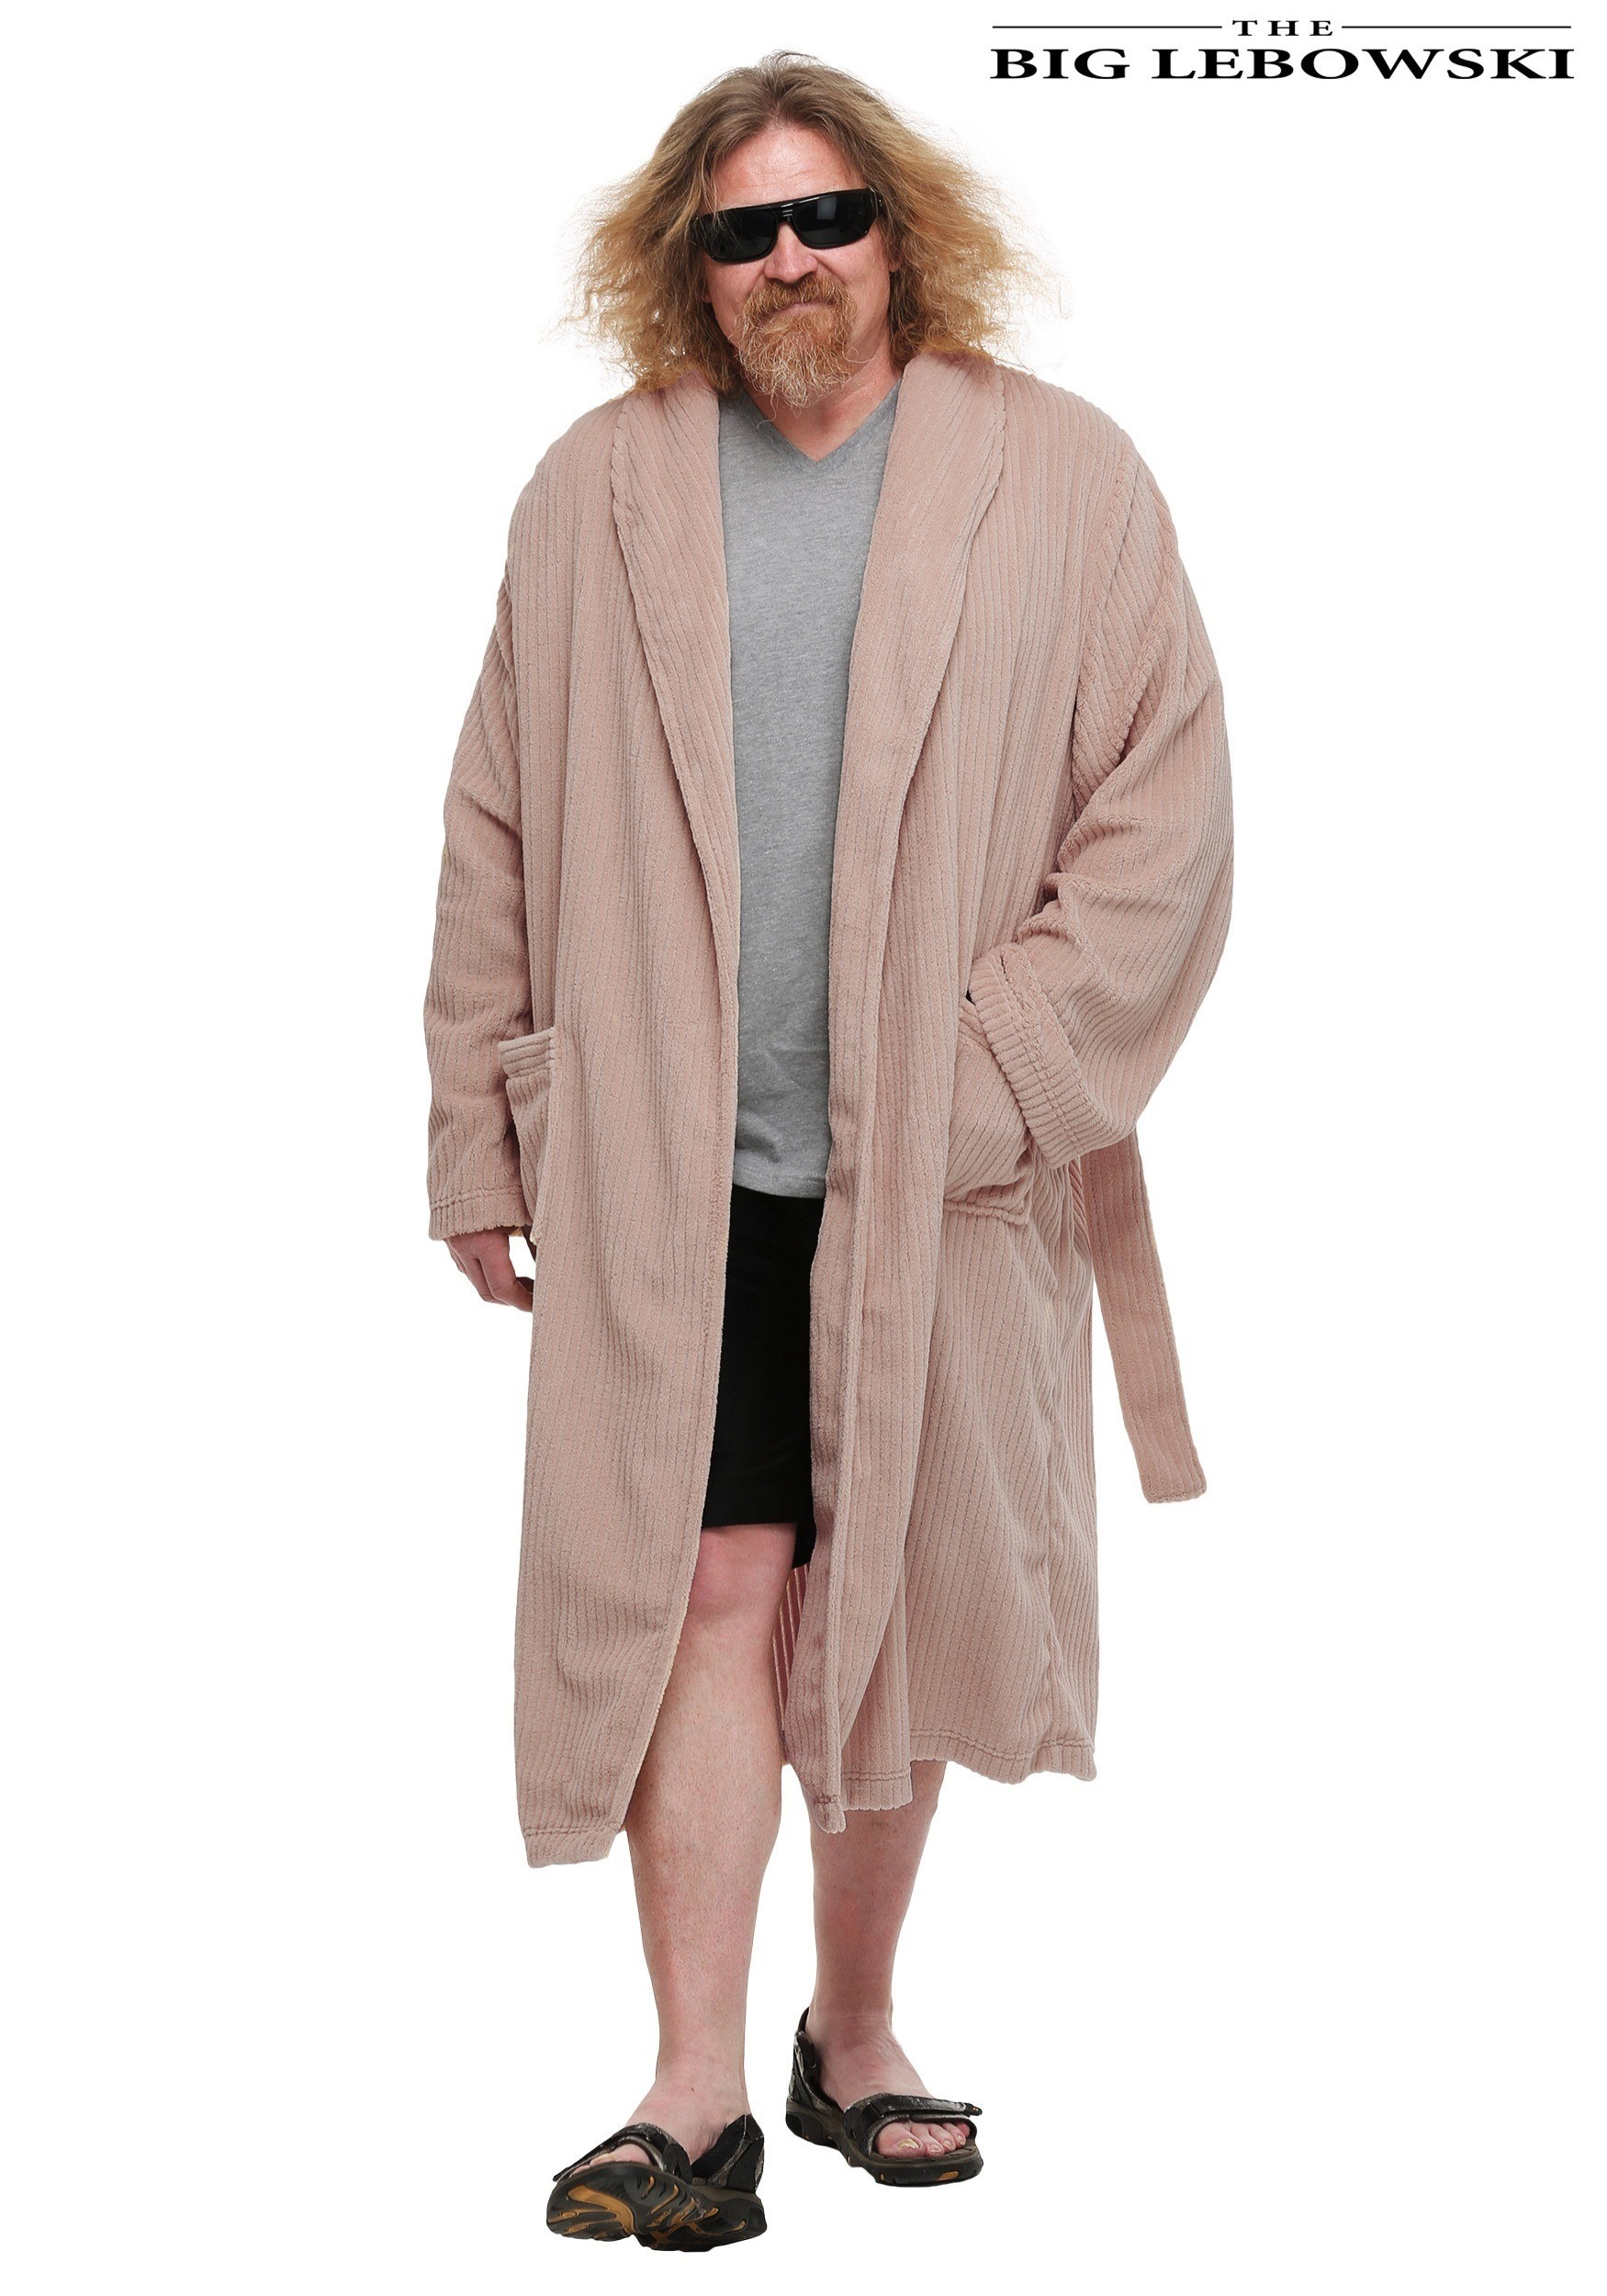 The Big Lebowski The Dude Bathrobe Costume